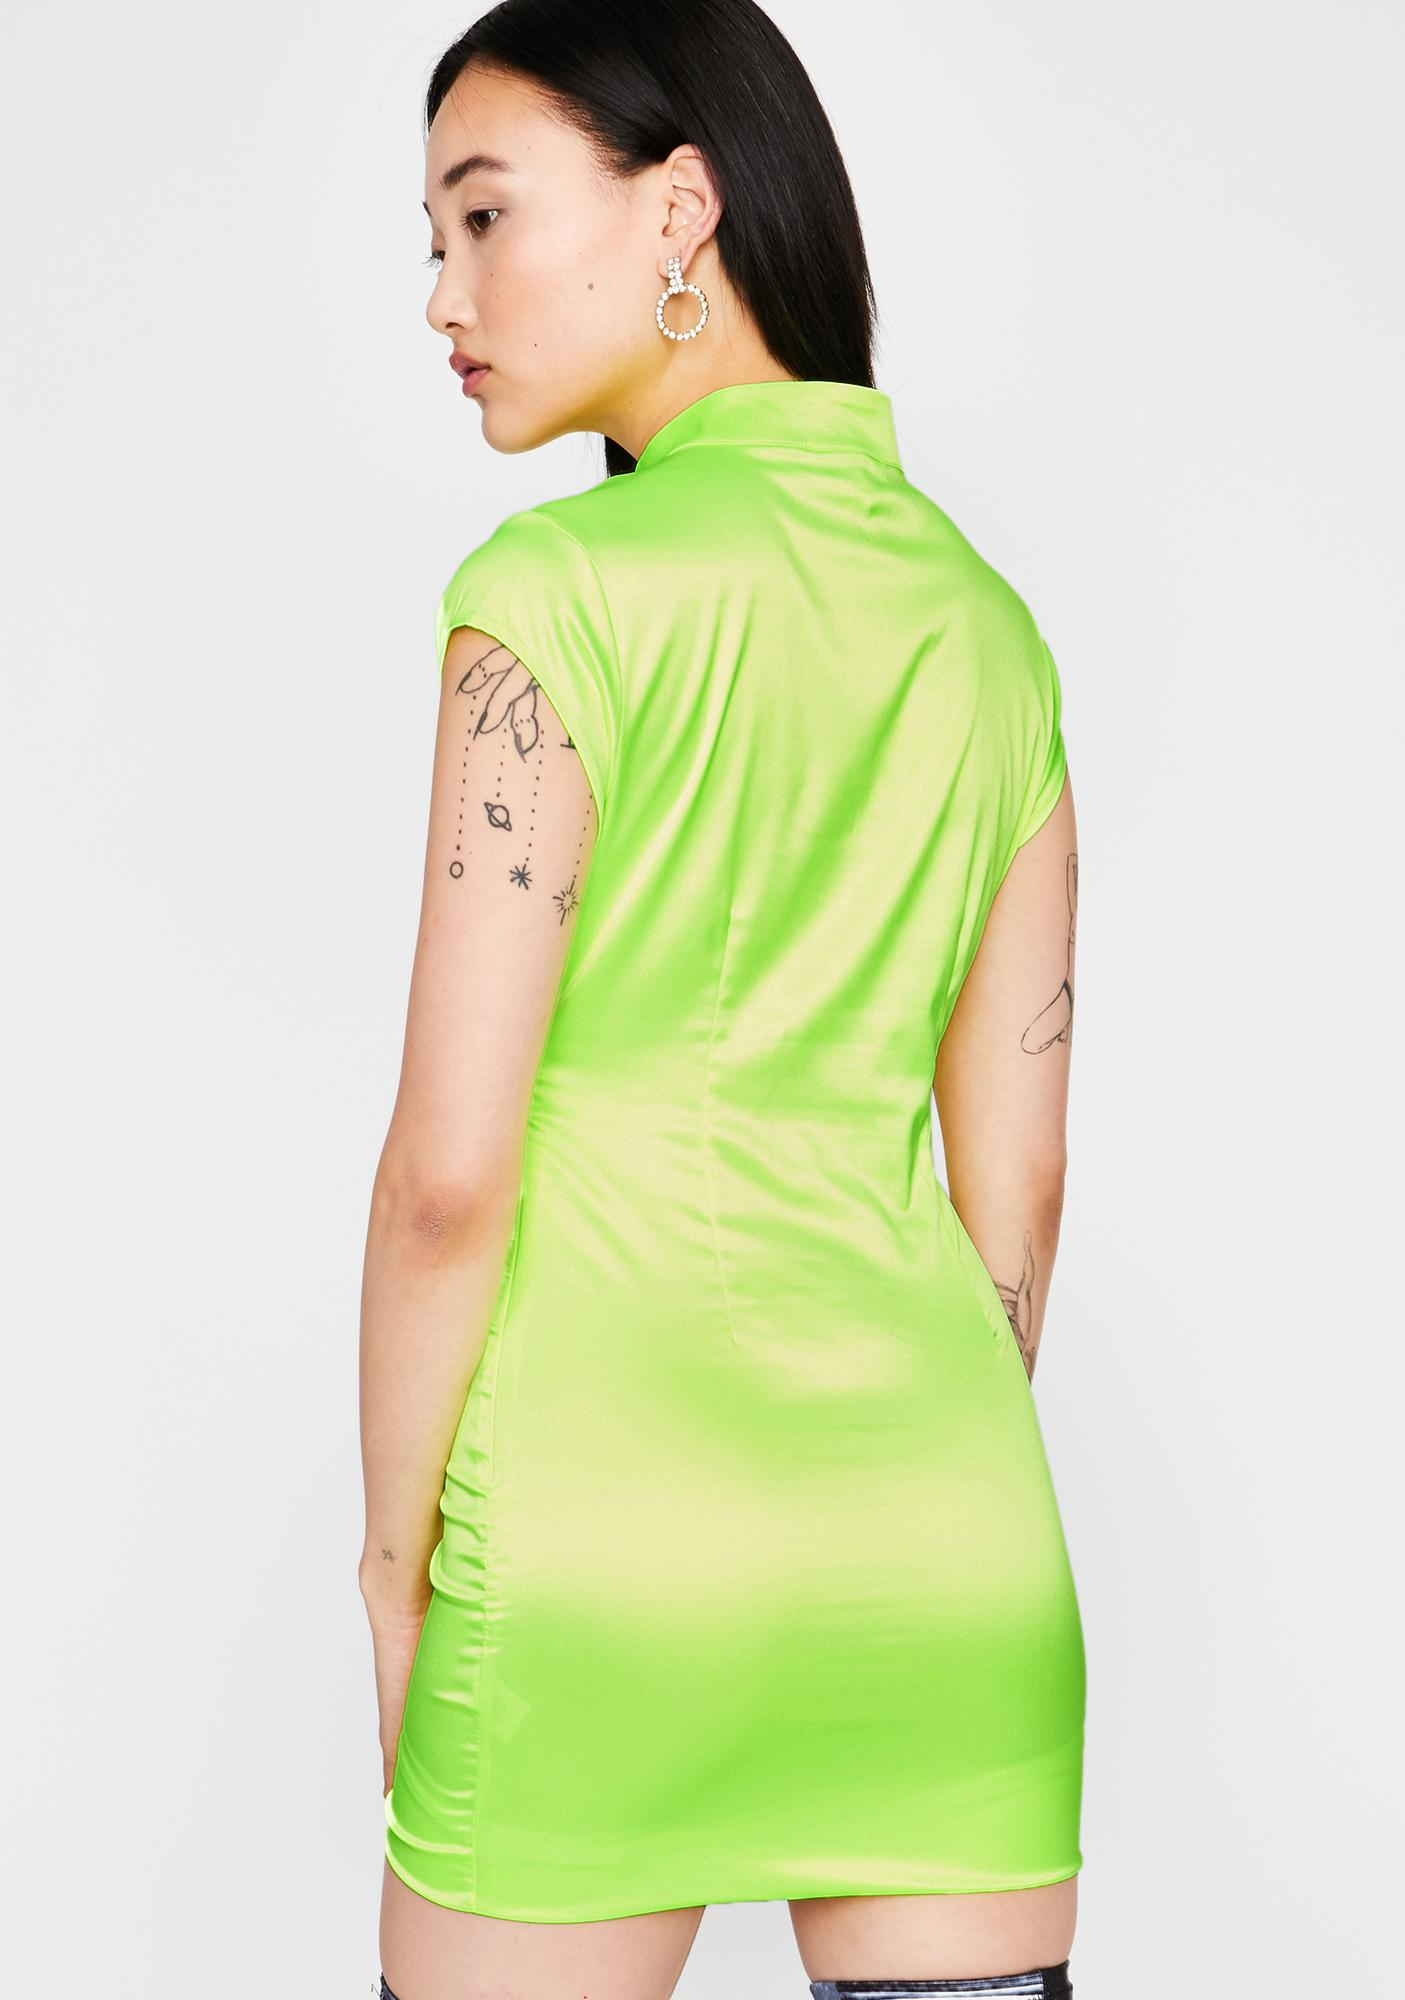 Toxic Fashionably Late Satin Dress